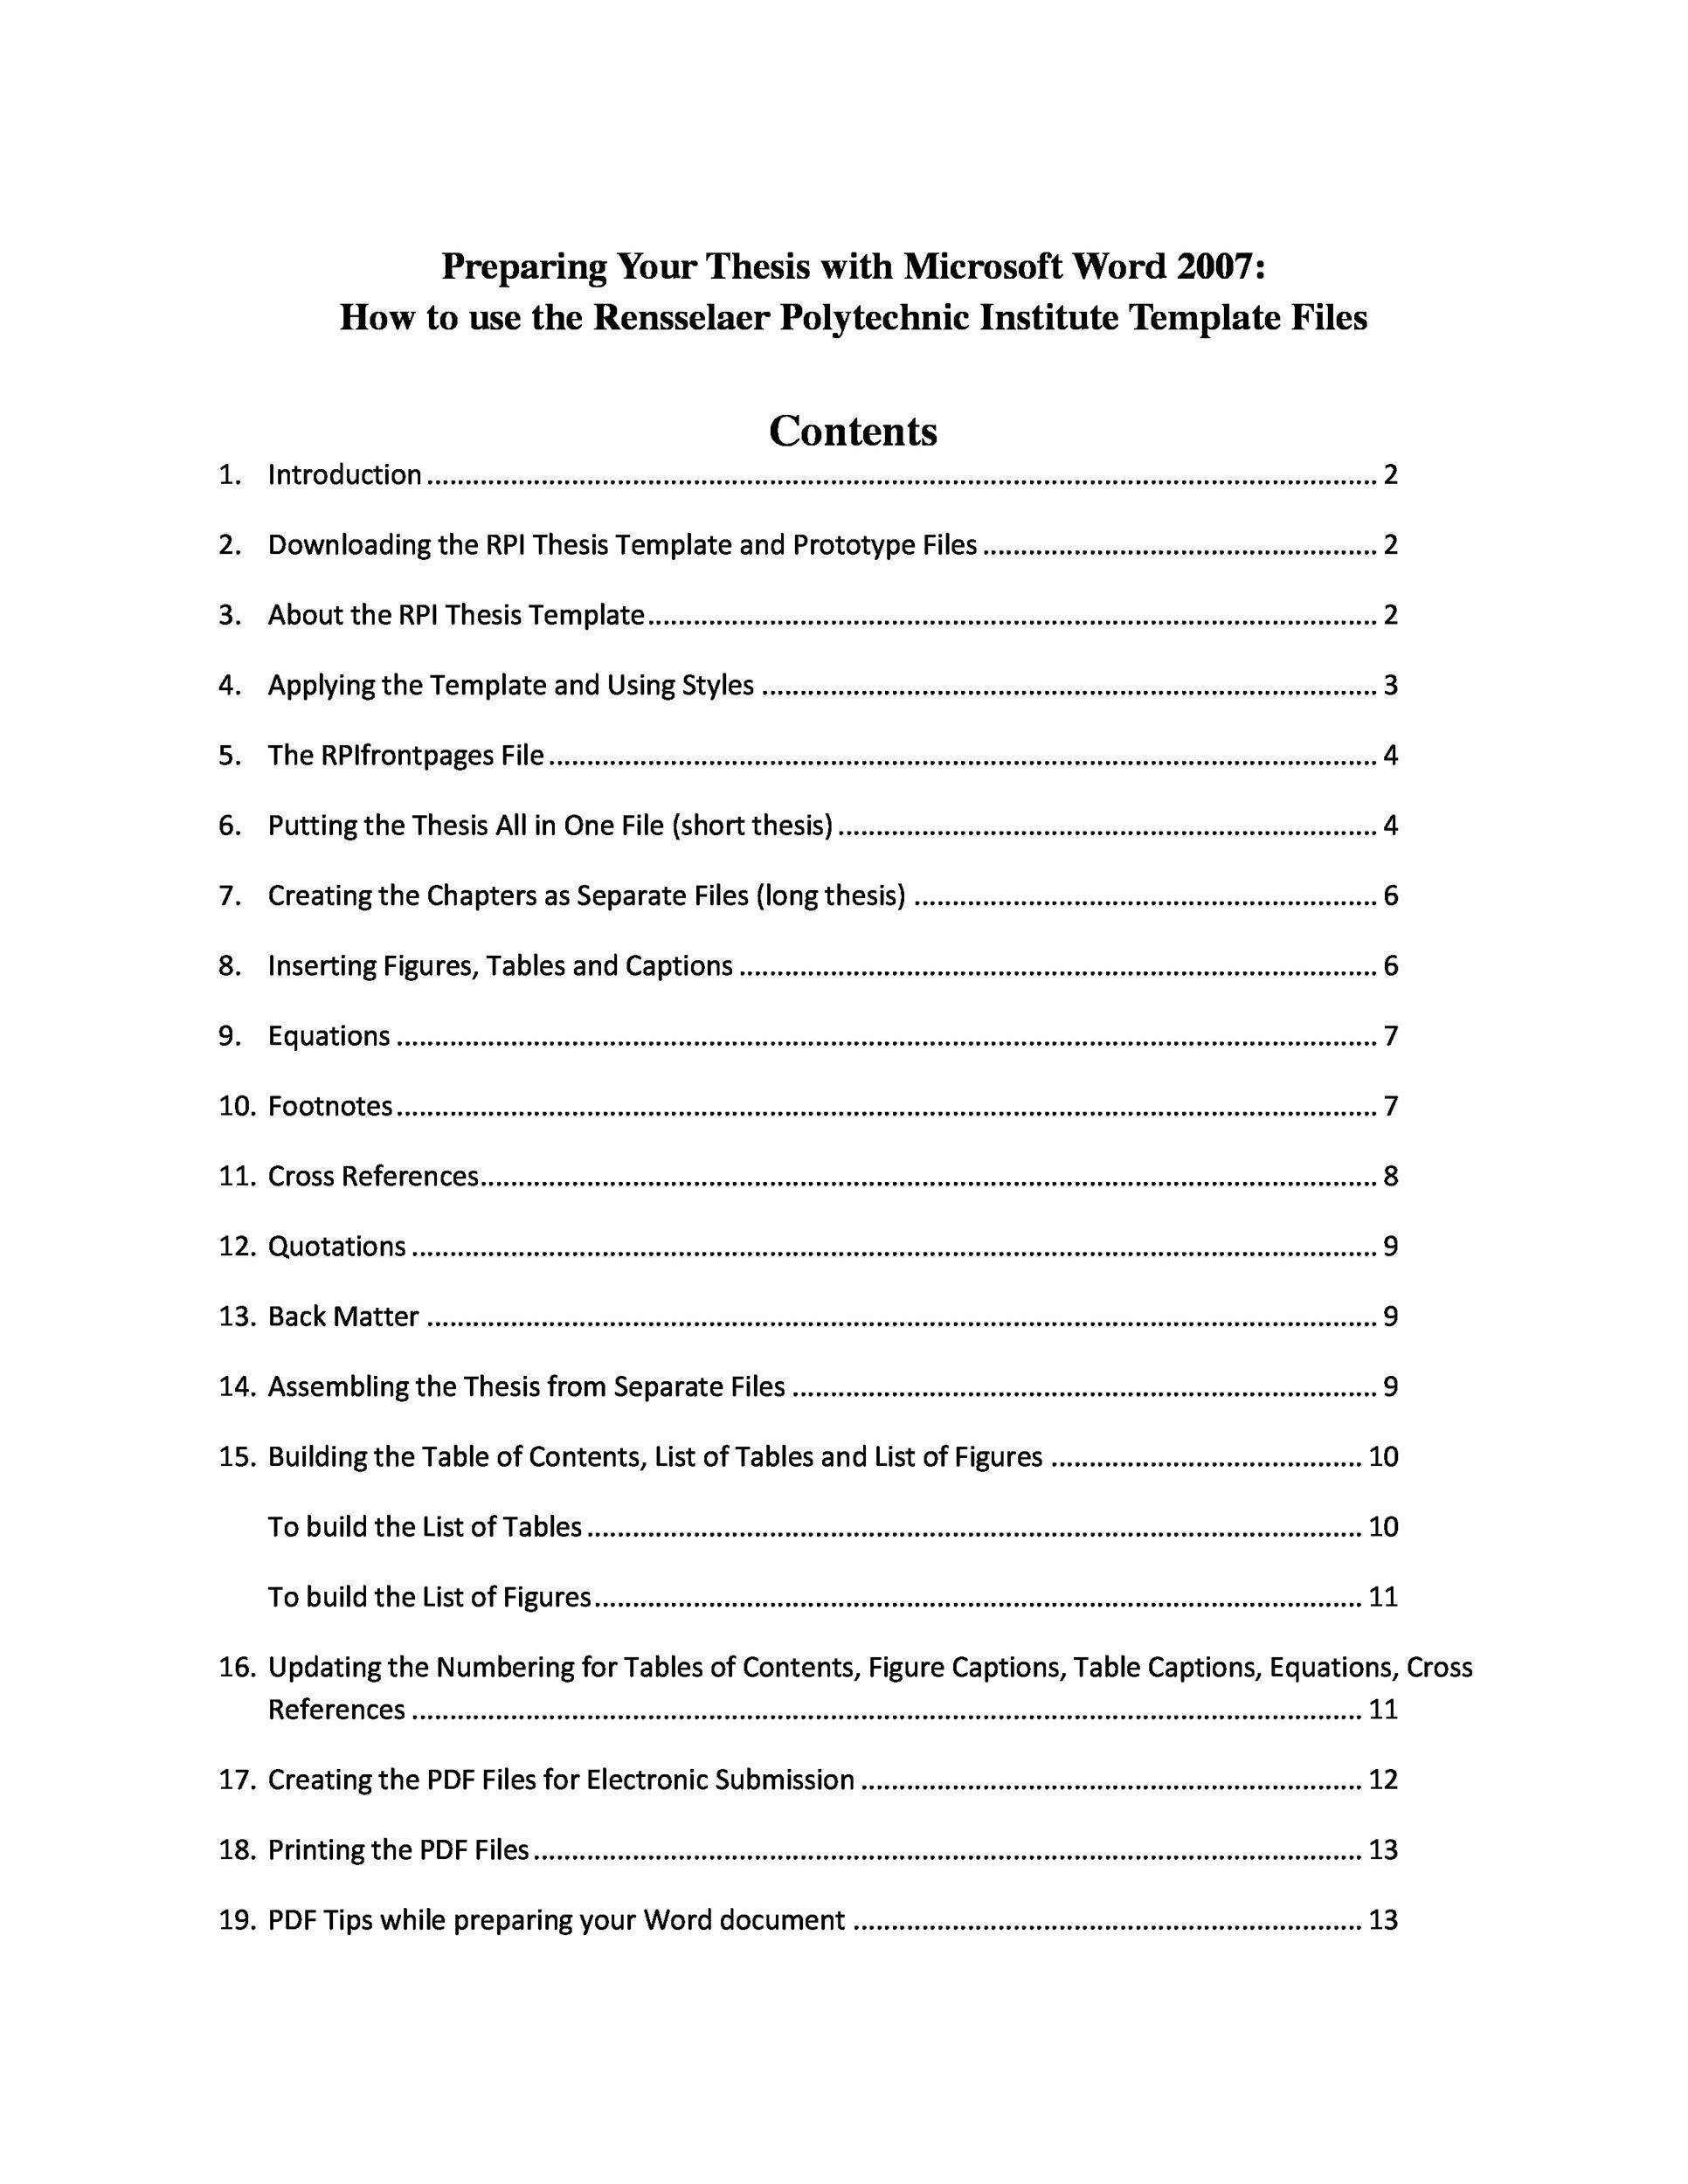 20 table of contents templates and examples template lab printable table of contents template pdf 04 pronofoot35fo Choice Image